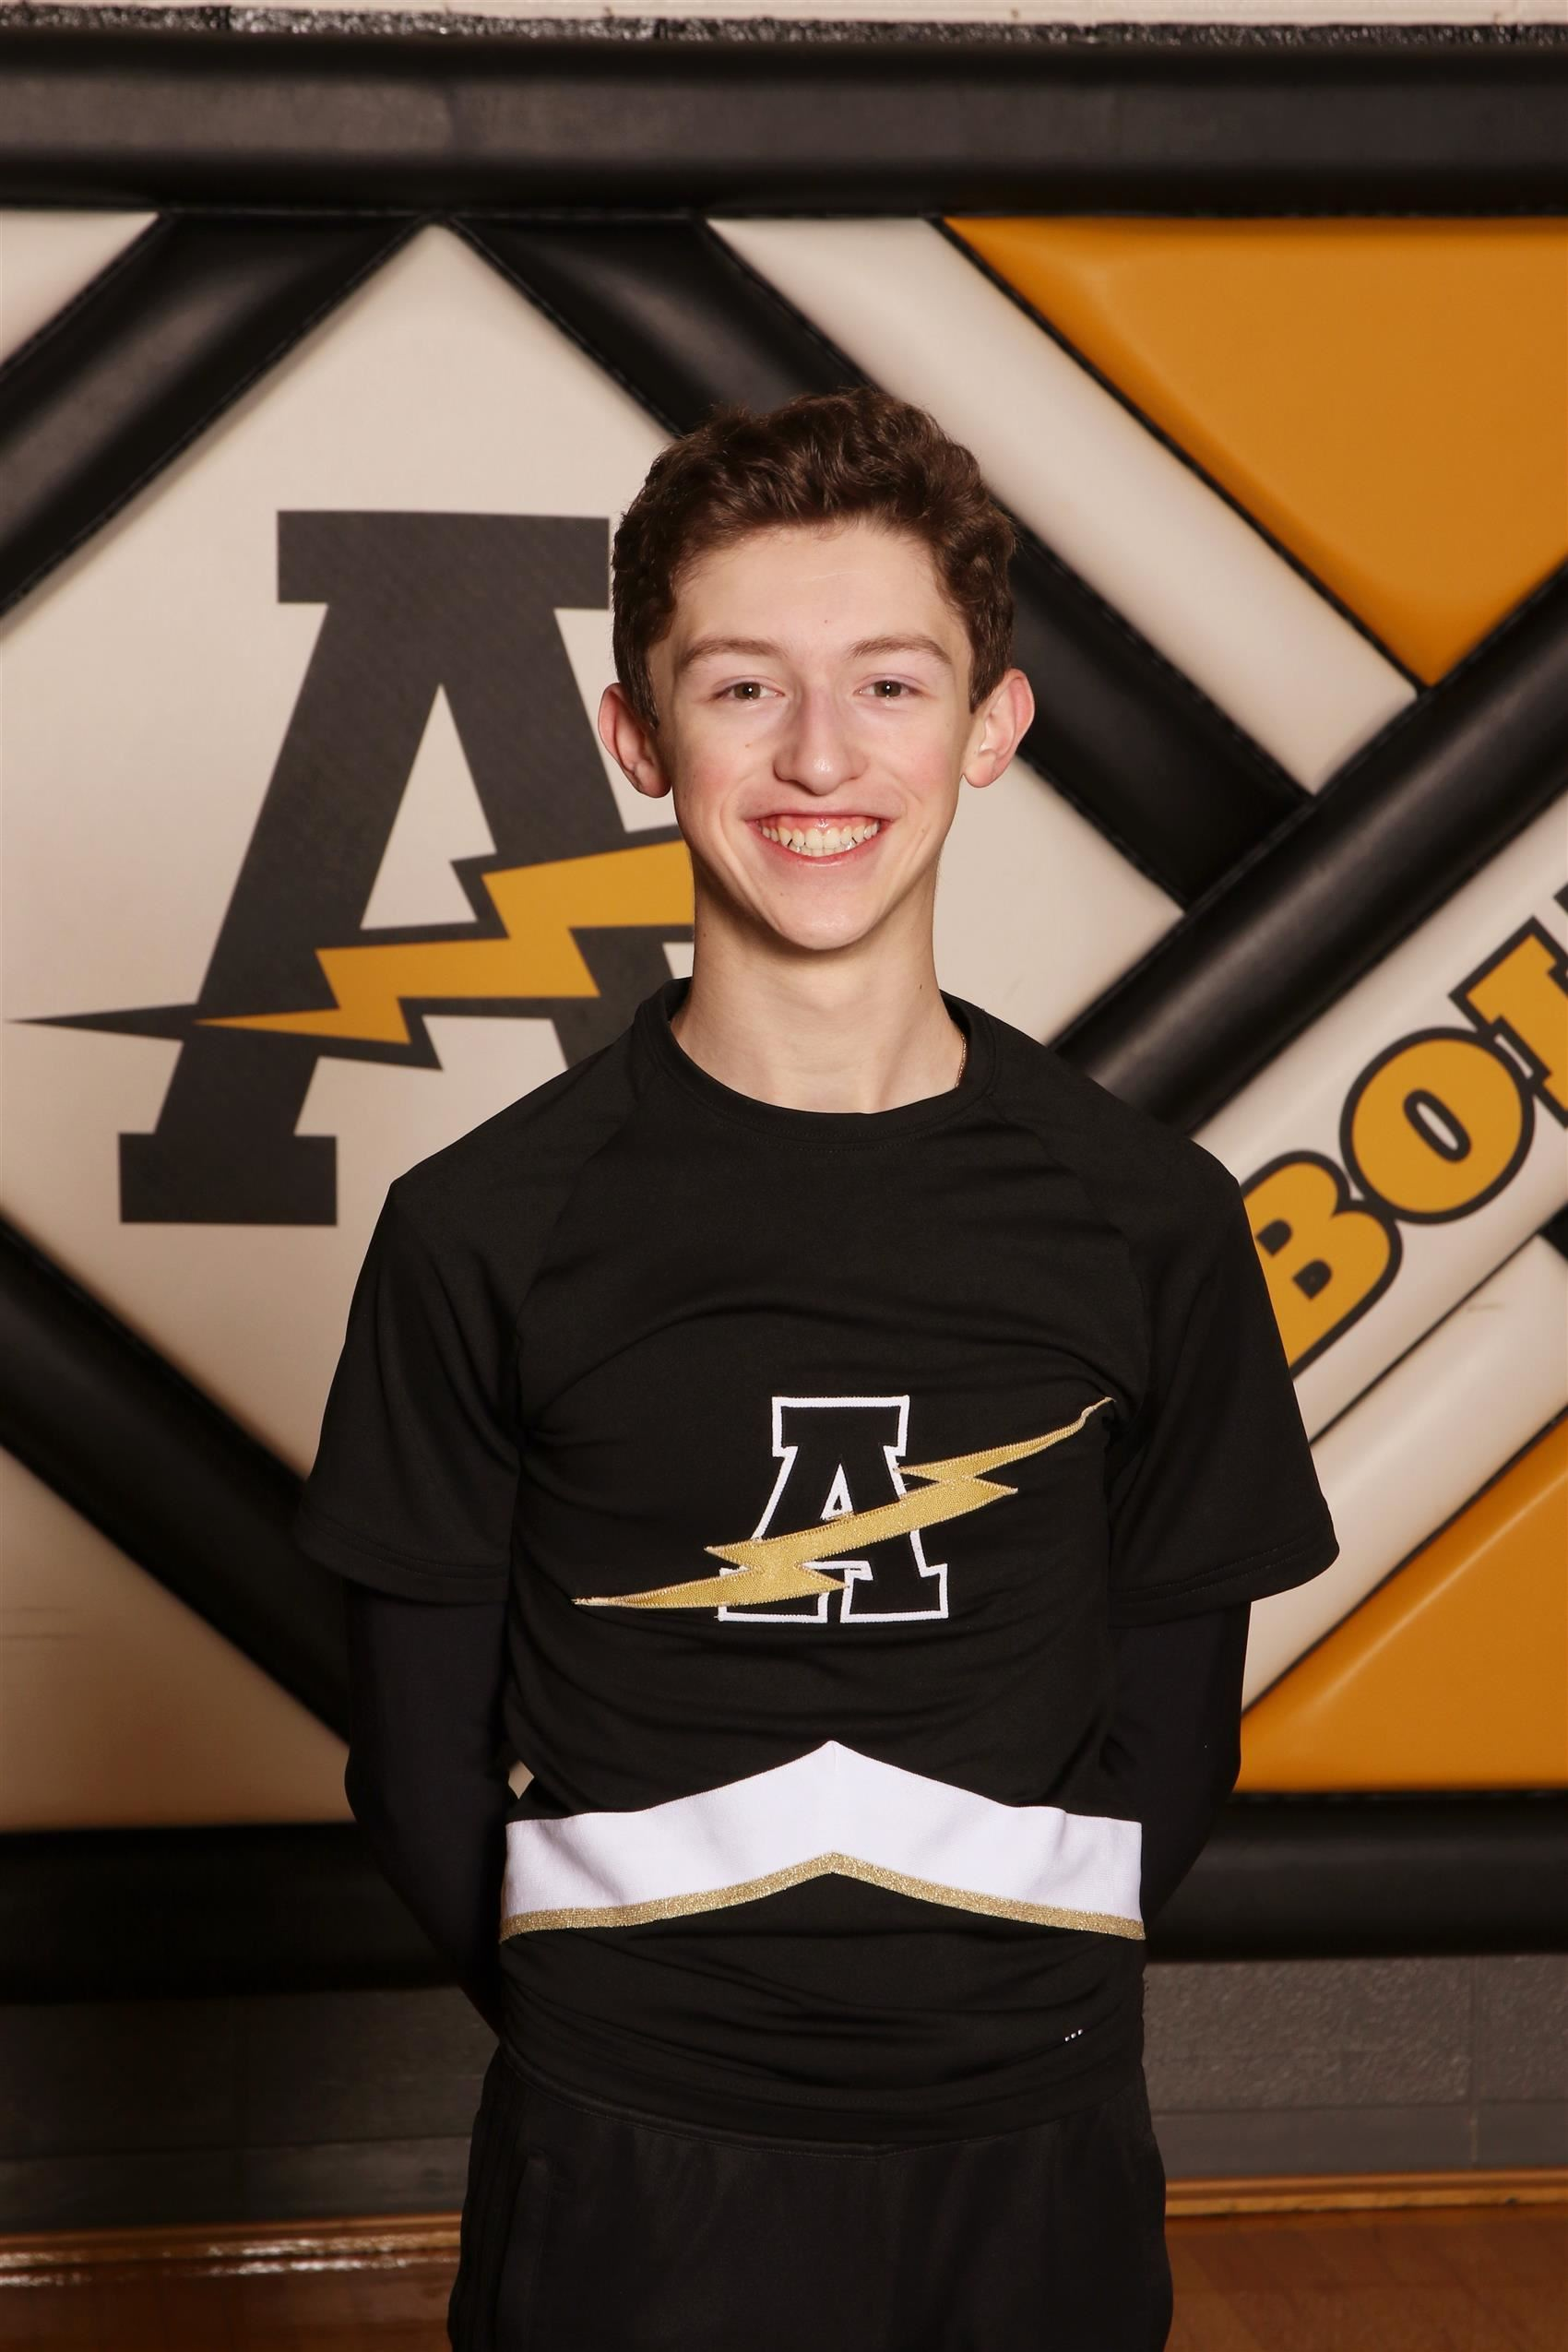 Nathan Mattix / Dance - Athlete of the Week of January 13, 2020